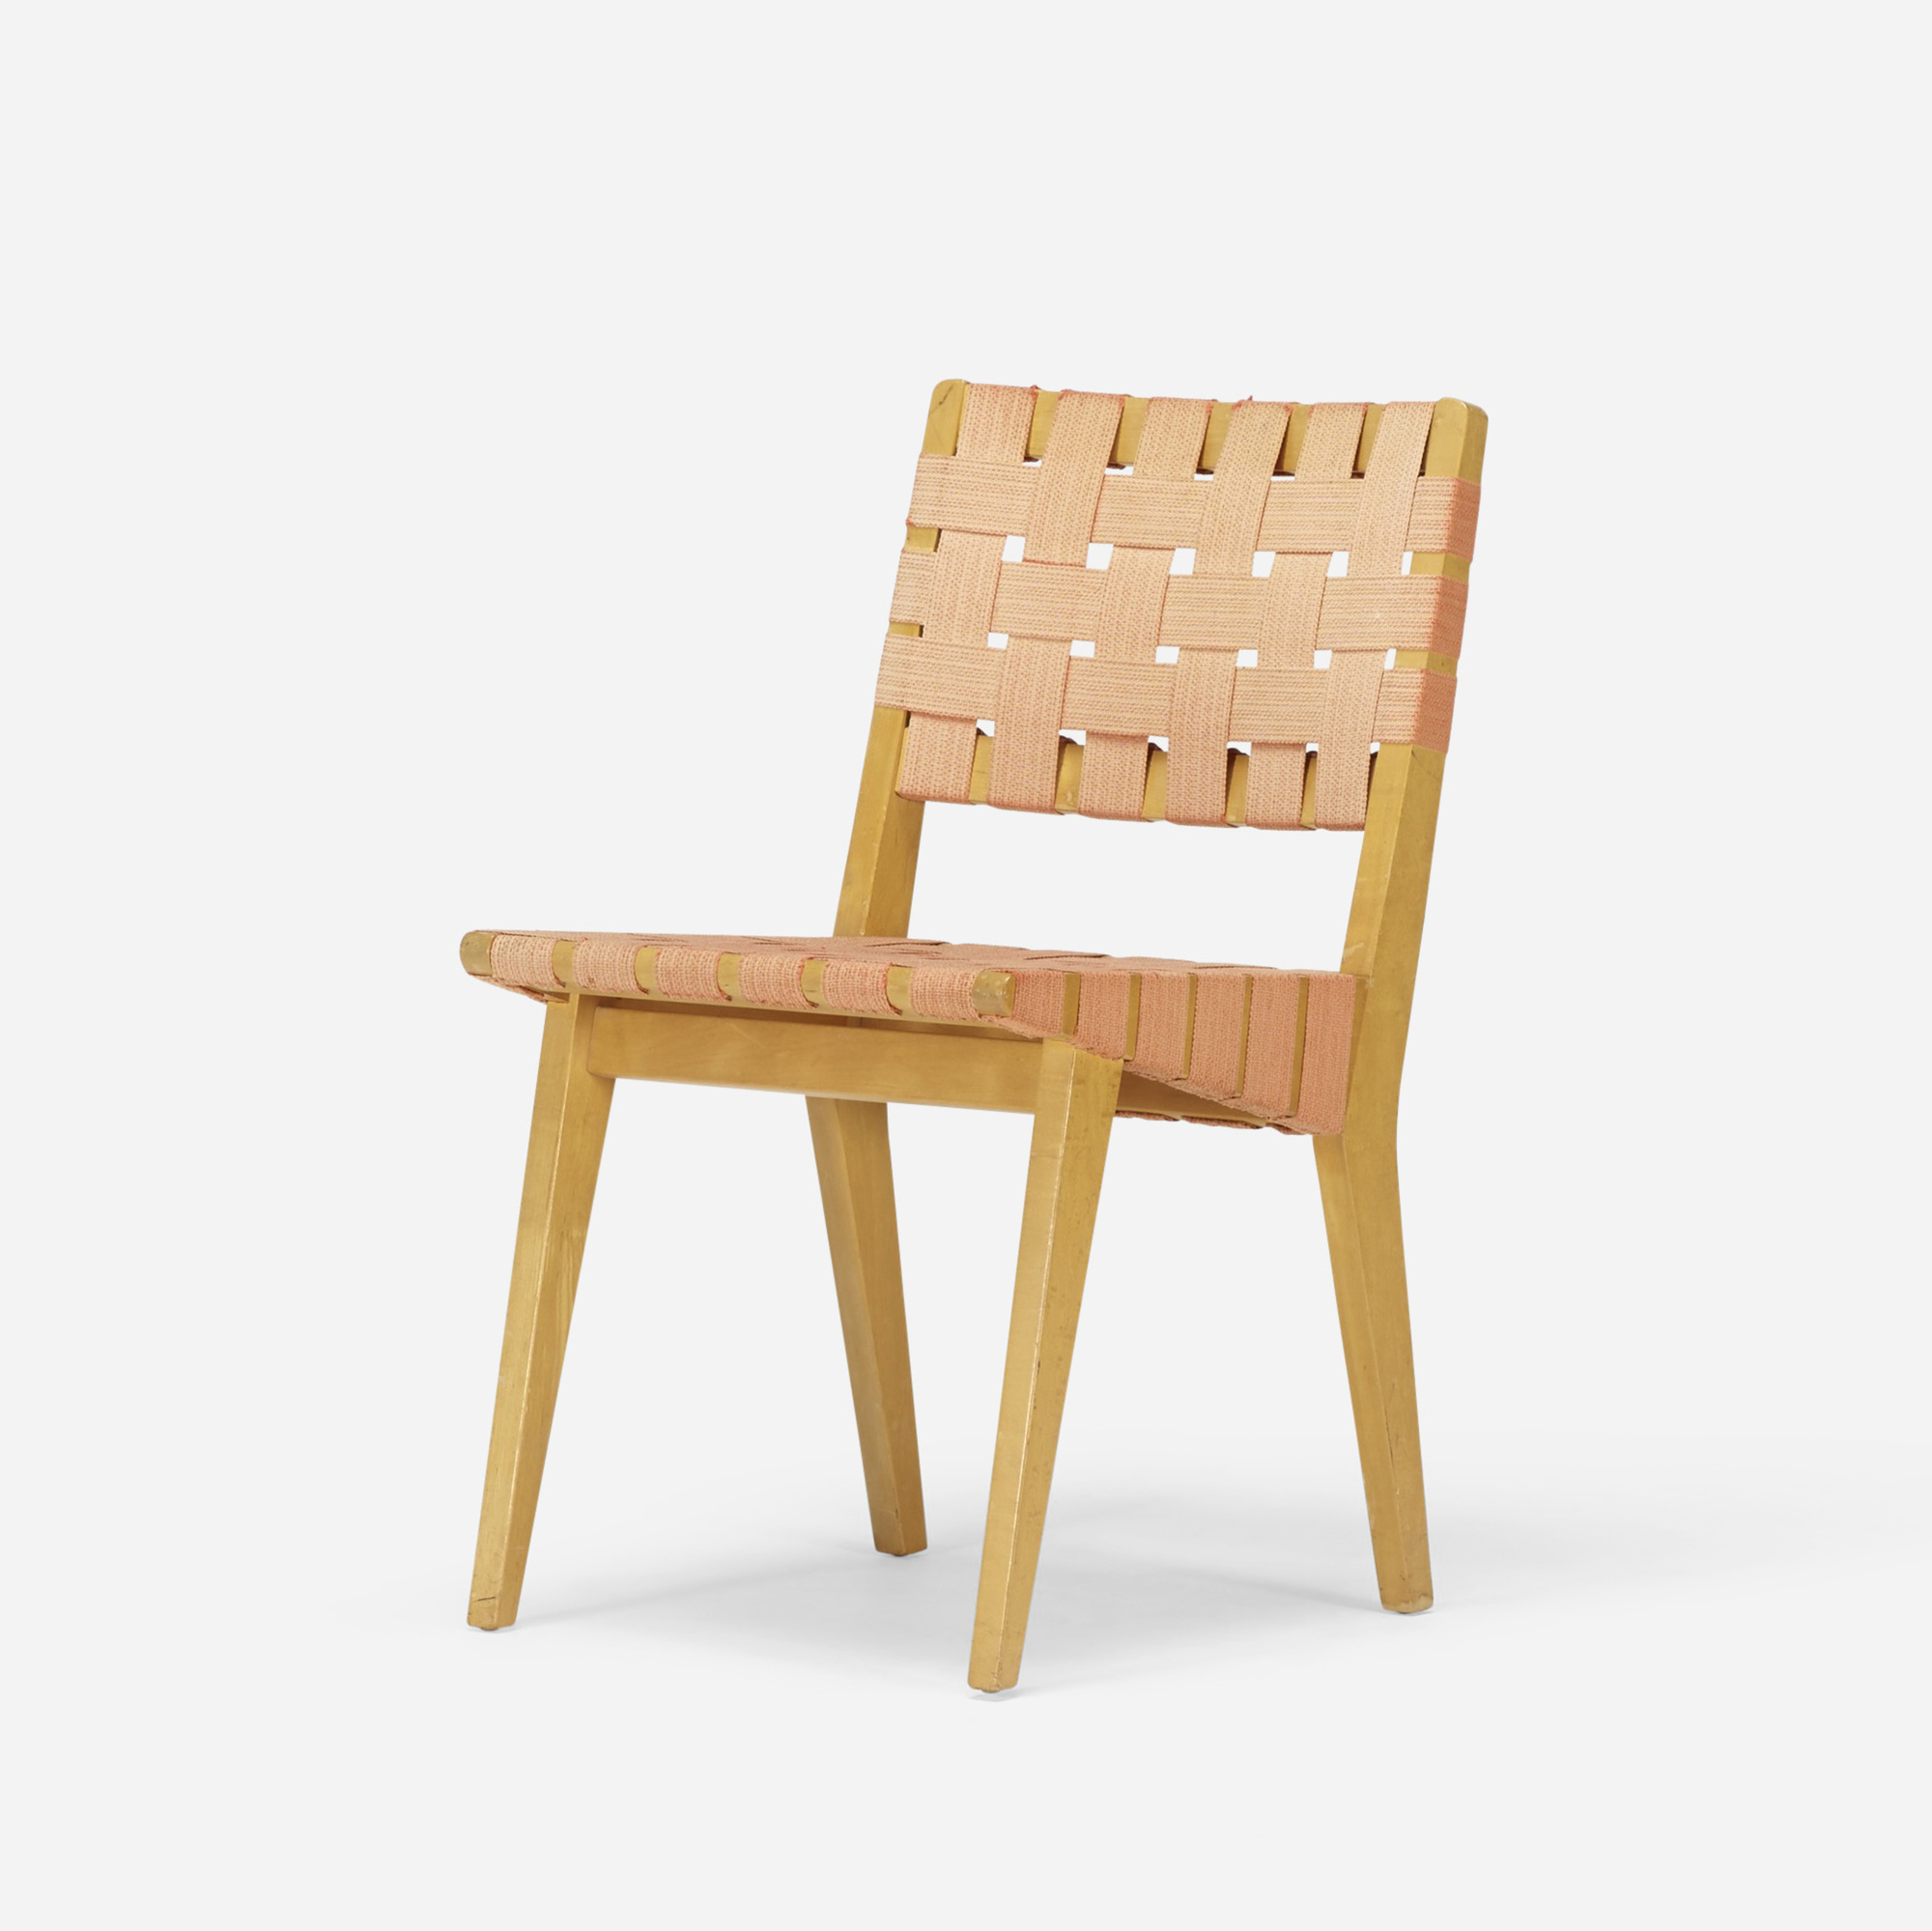 682: Jens Risom / chair (1 of 3)